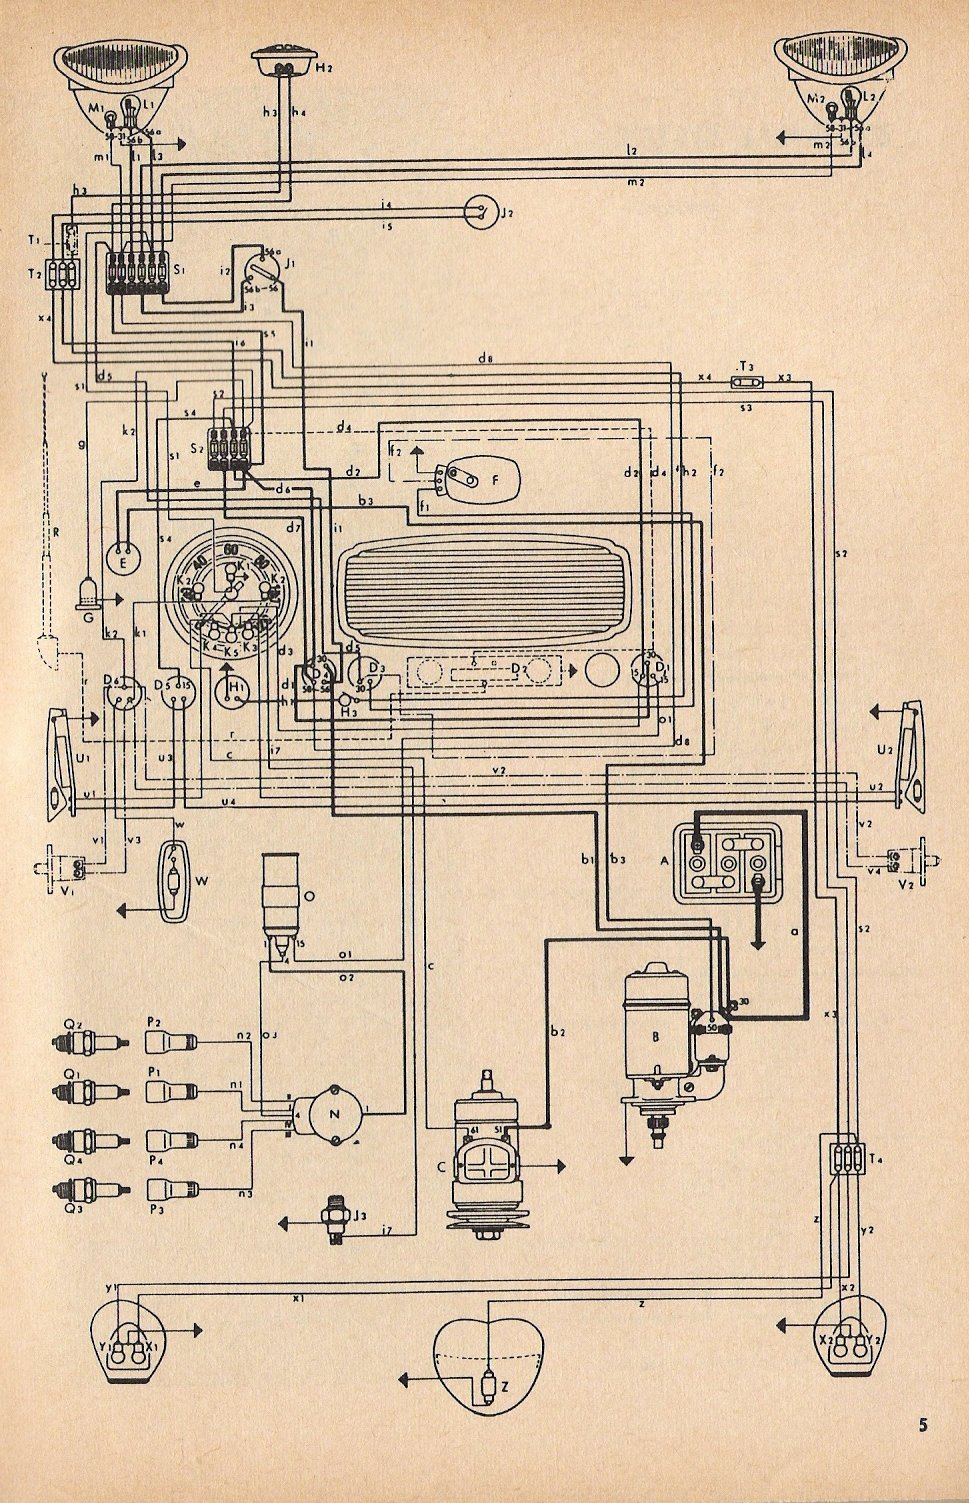 1973 Vw Super Beetle Engine Wiring Diagram Guide And 69 Volkswagen Bug Voltage Regulator Thesamba Com Type 1 Diagrams Rh Fuse Box